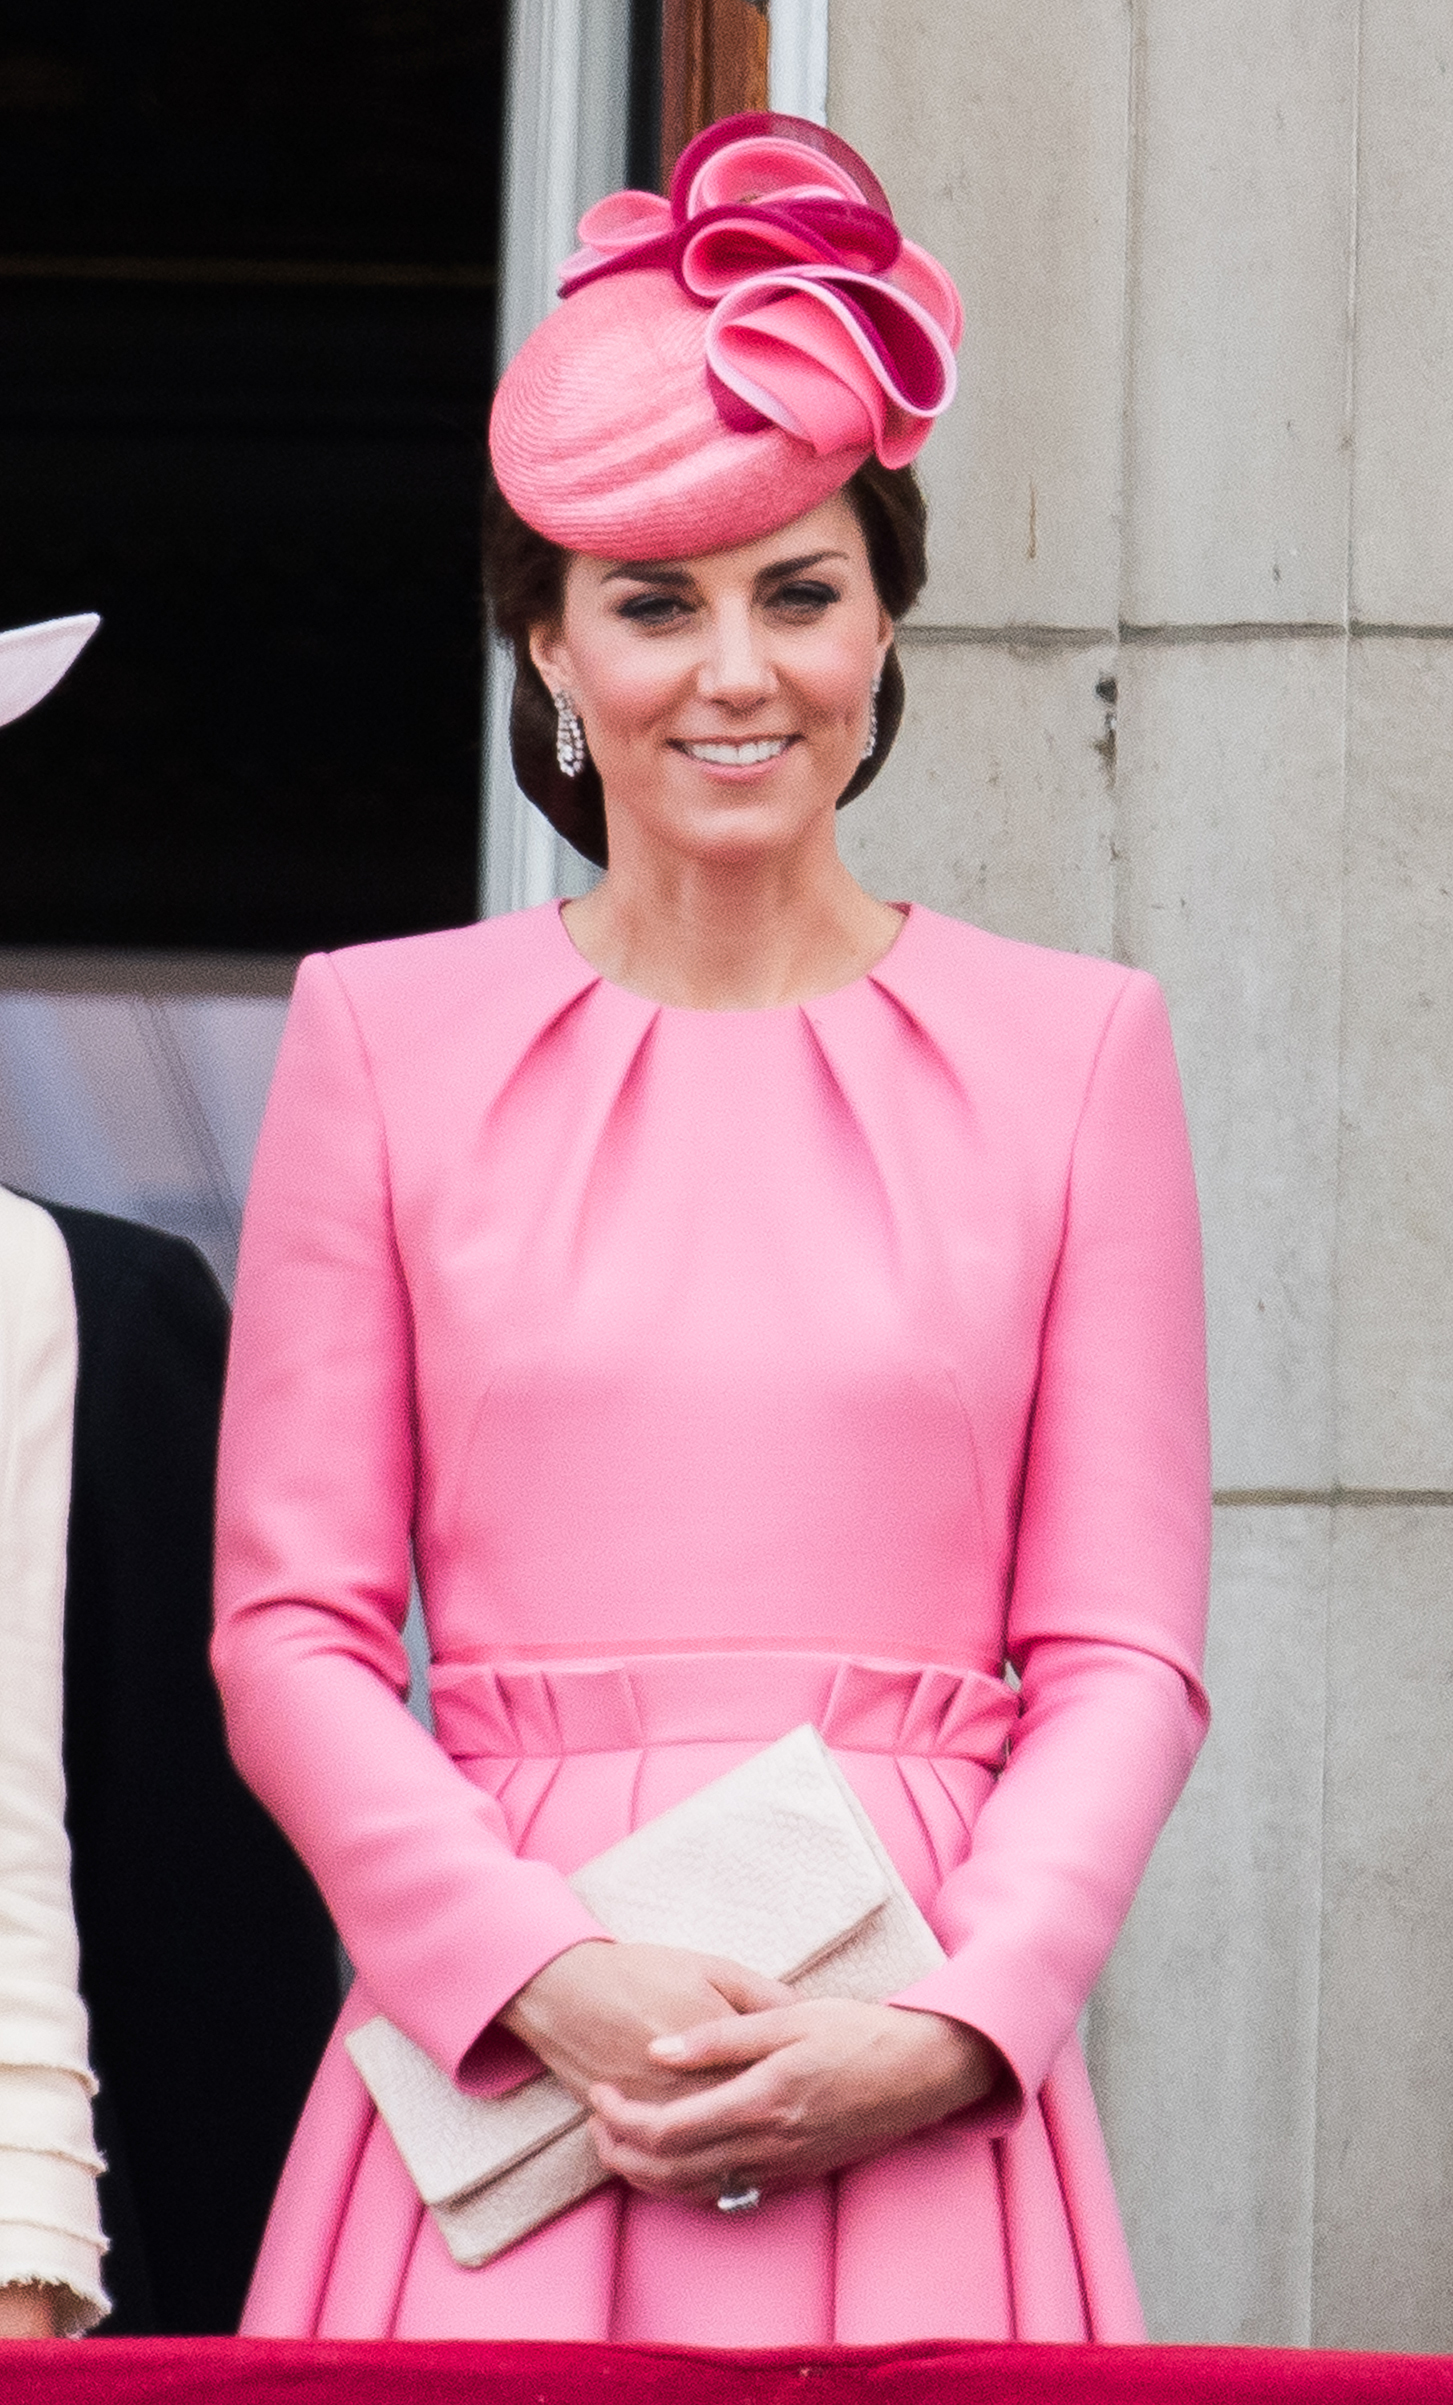 Catherine, Duchess of Cambridge, stands on the balcony of Buckingham Palace at the annual Trooping the Colour parade in London on June 17, 2017.